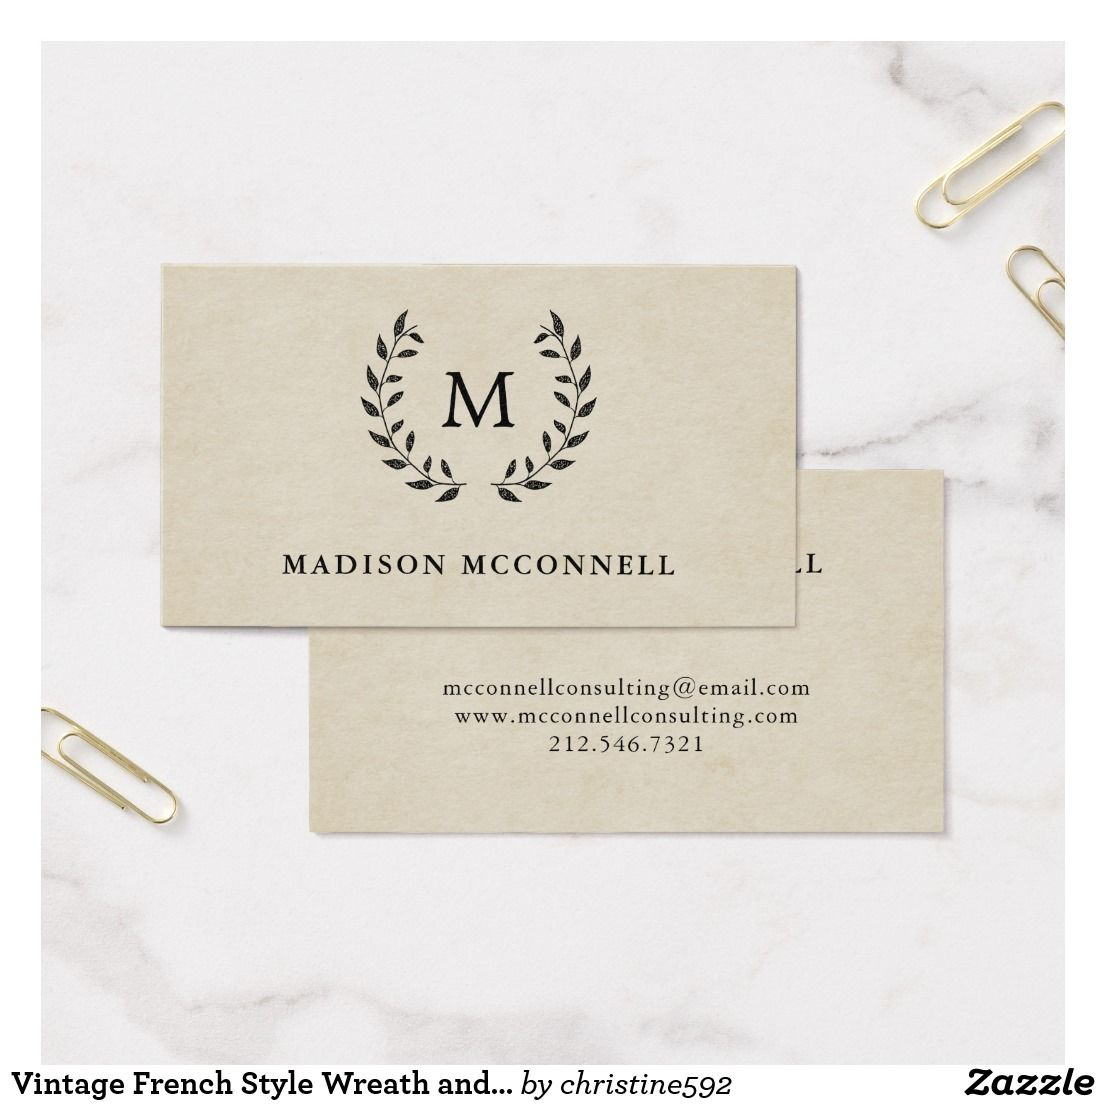 Vintage French Style Wreath and Monogram Business Card   Business ...